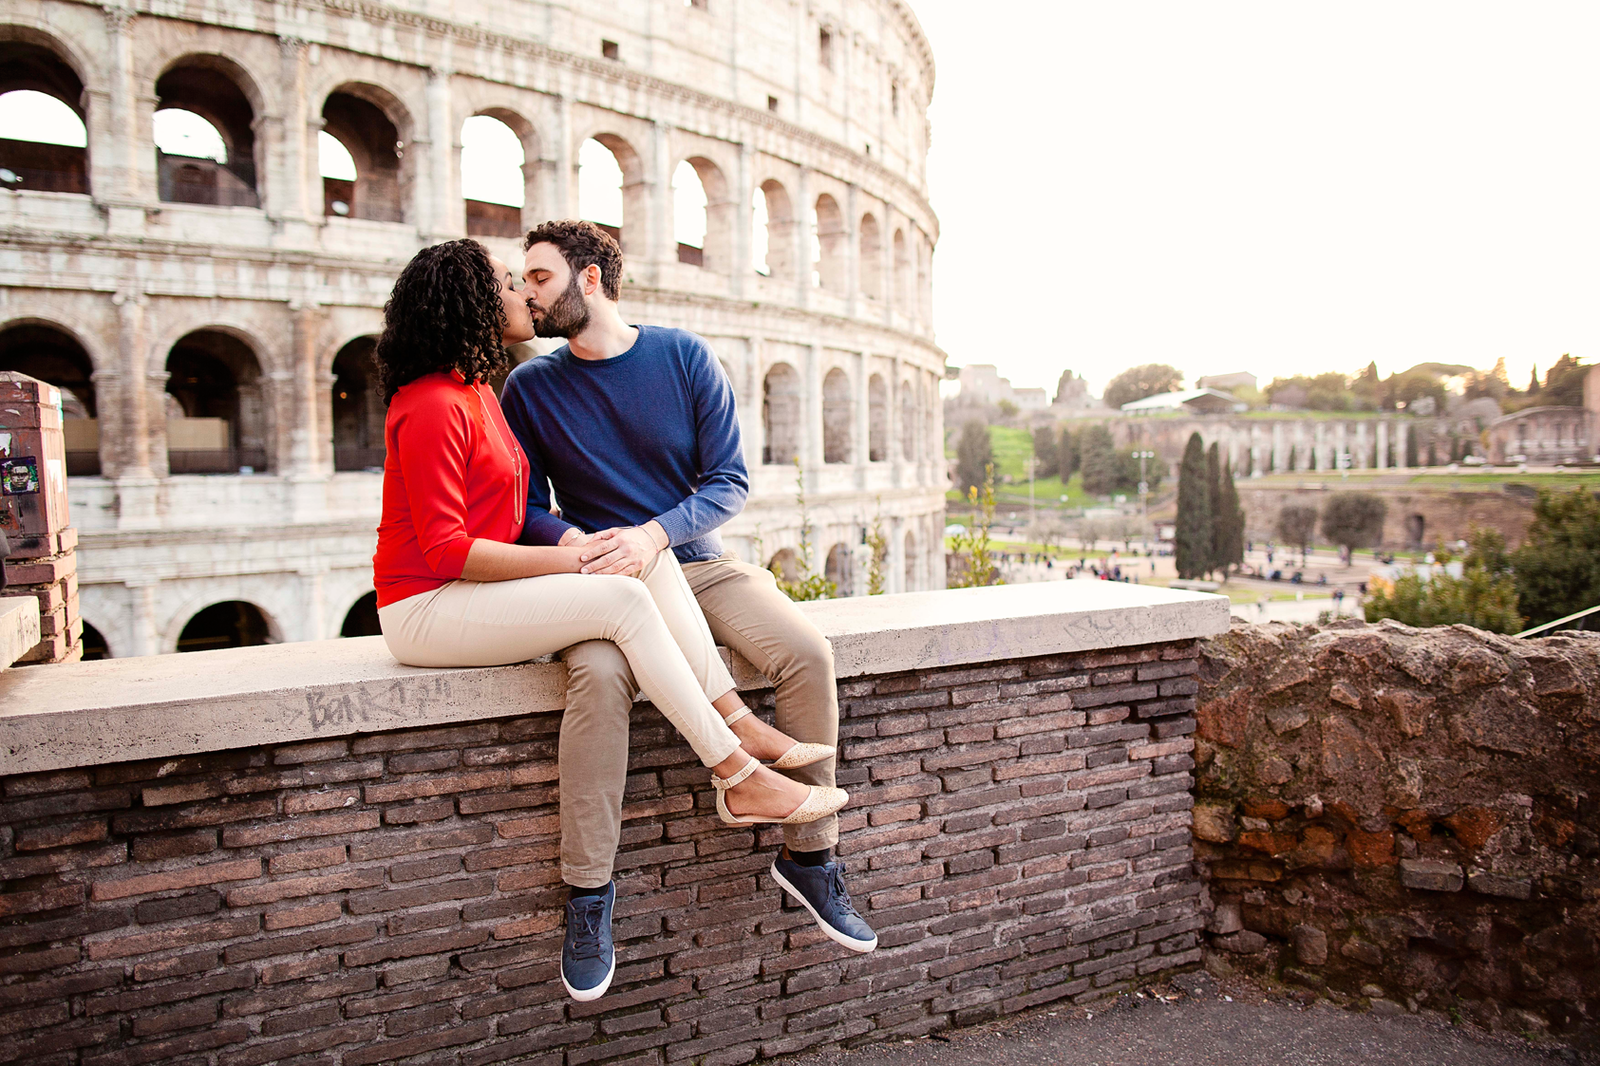 Tricia Anne Photography - Rome Photographer - Rome Engagement Photography - Rome Destination Photographer - Photographer in Rome